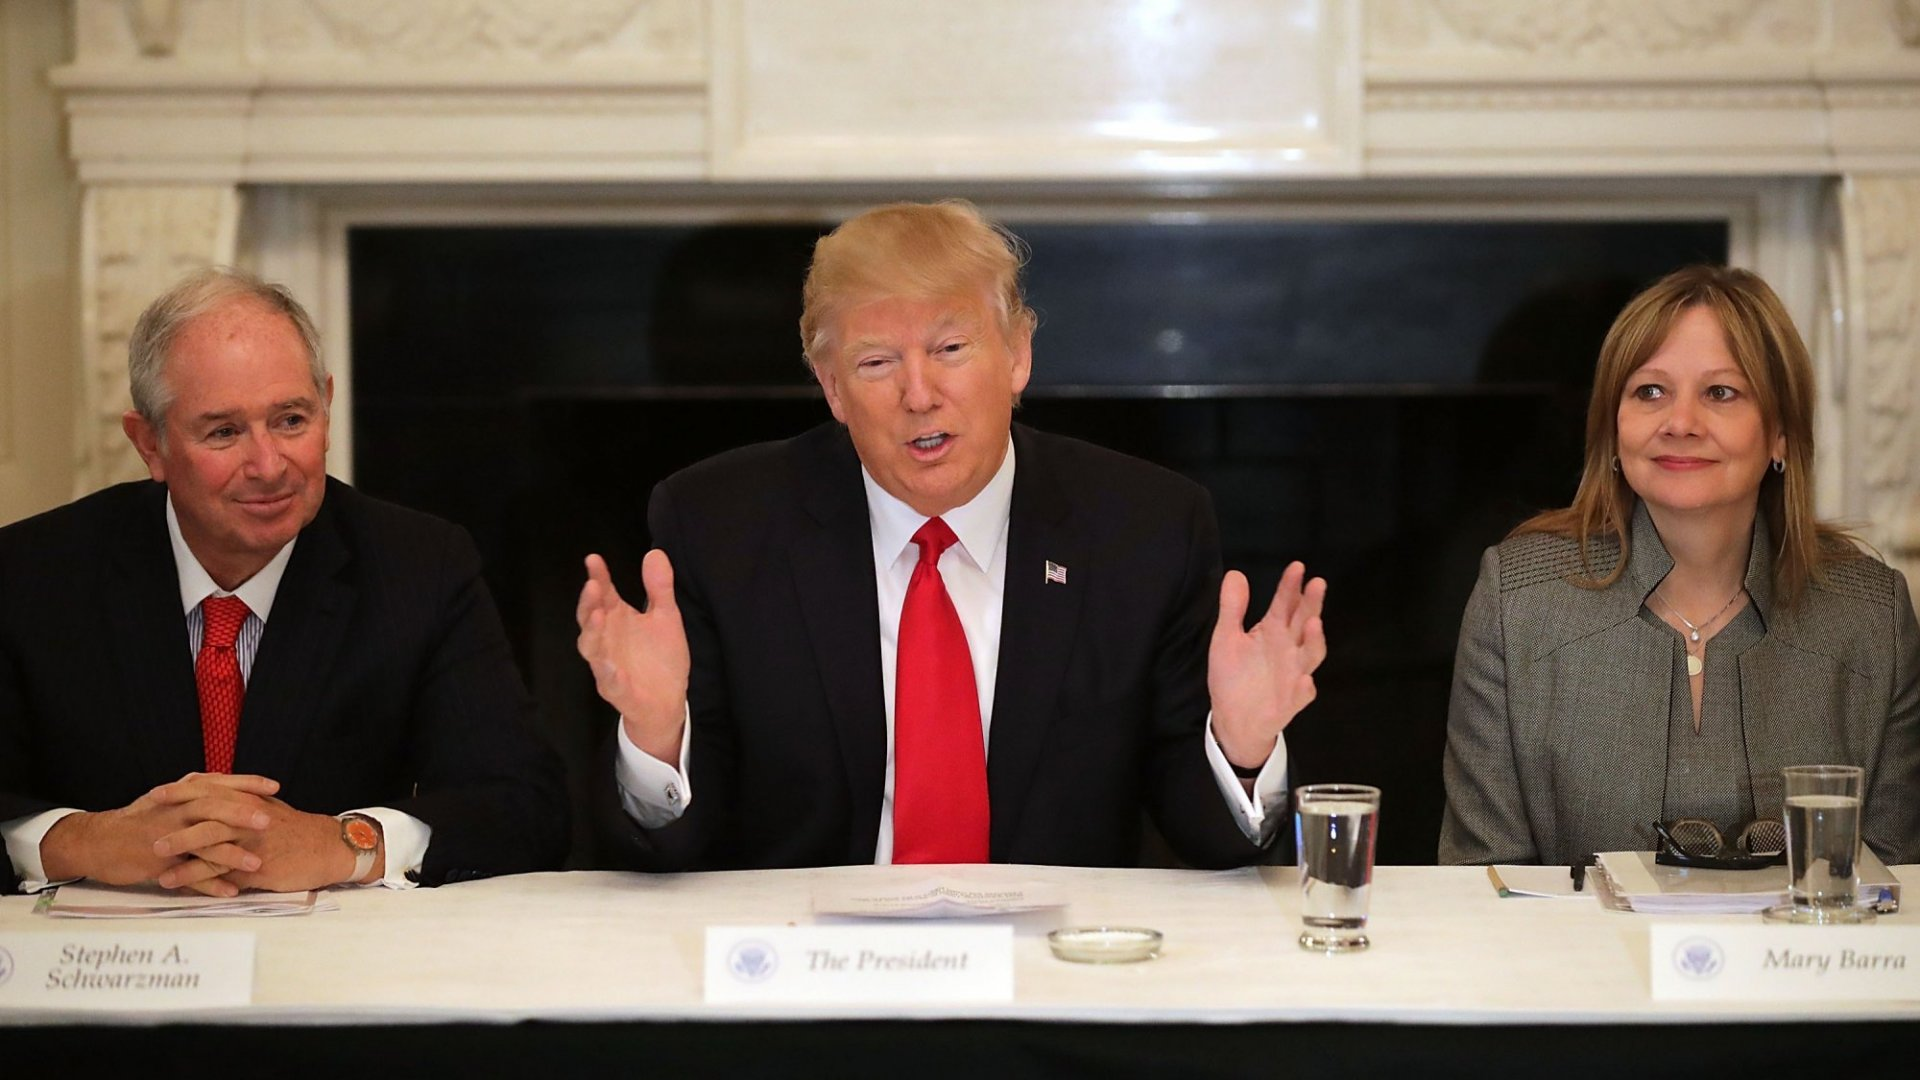 President Donald Trump delivers opening remarks at a forum of Business leaders with General Motcrs CEO Mary Barra (R) and chaired by Blackstone Group CEO Stephen Schwarzman at the White House February 3,2017 in Washington, D.C. Leaders from automotive and manufacturing industries, financial and retail services and other powerful global businesses were invited.